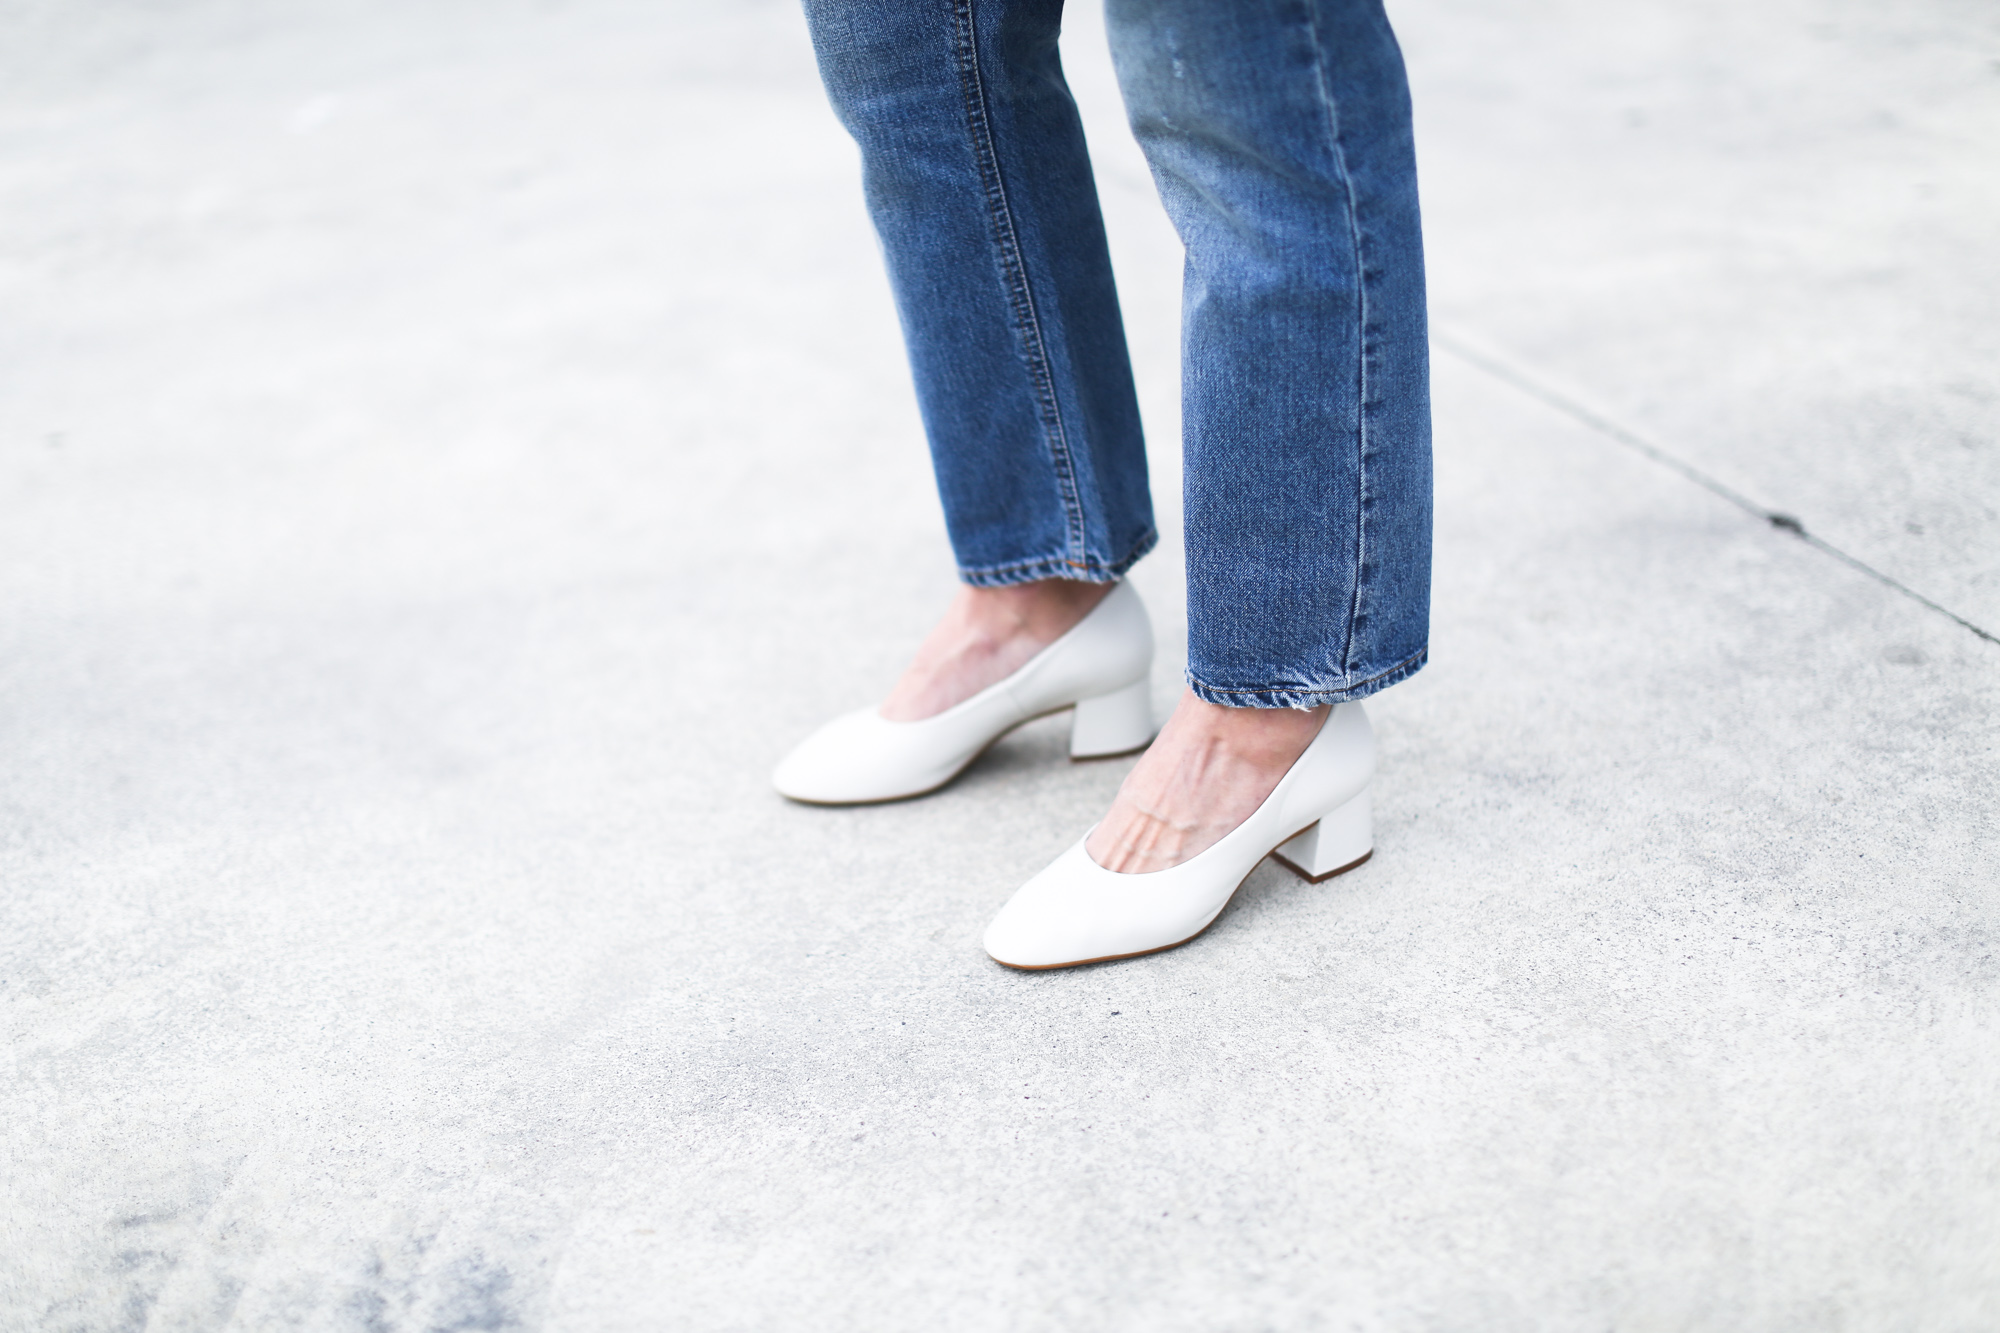 clochet_streetstyle_acnestudios_pop_jeans_mansurgavriel_bucket_bag_granny_shoes-11